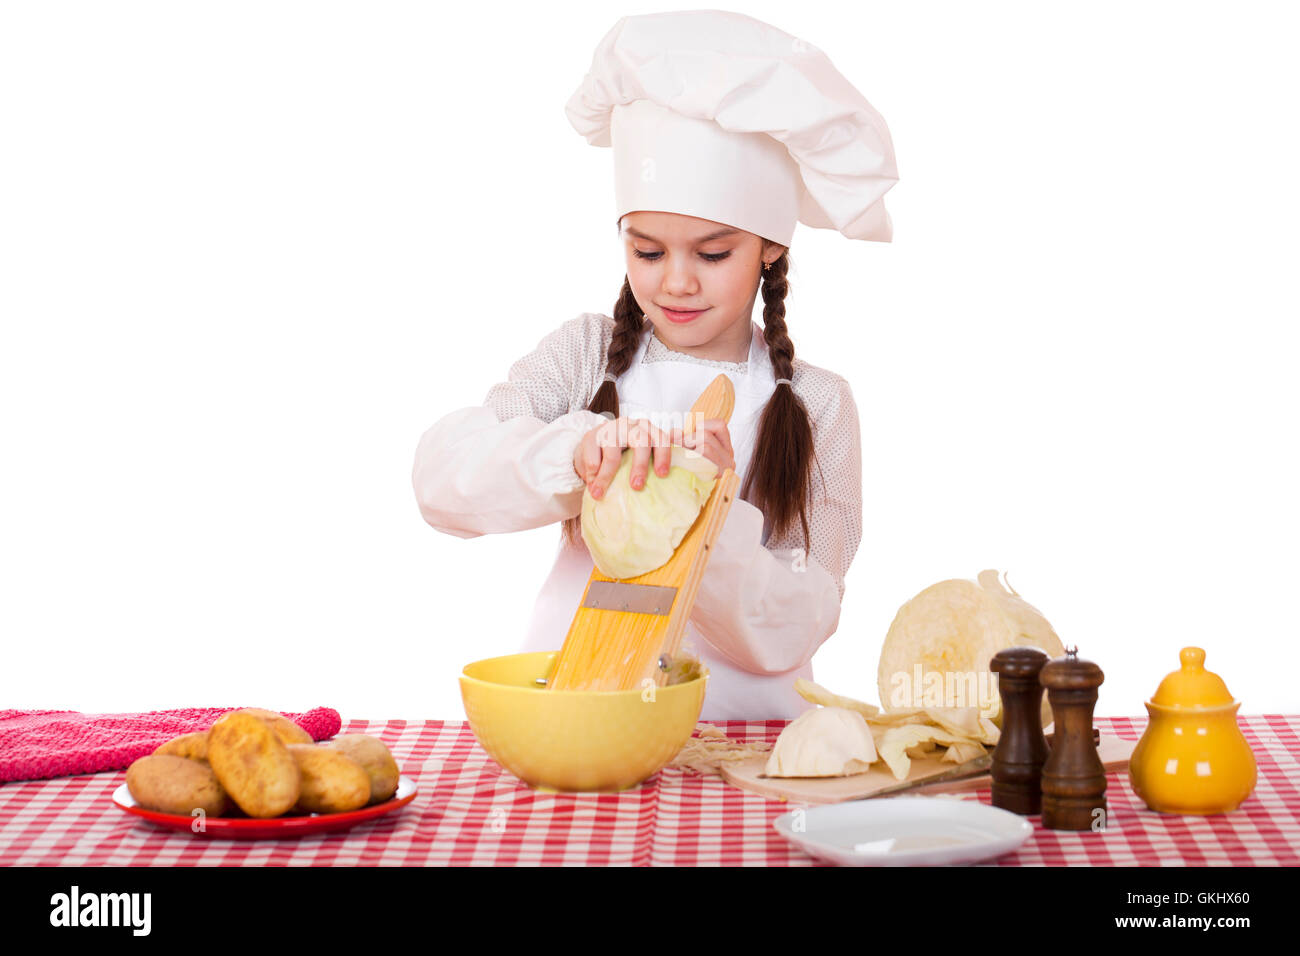 White apron girl - Portrait Of A Little Girl In A White Apron And Chefs Hat Shred Cabbage In The Kitchen Isolated On White Background